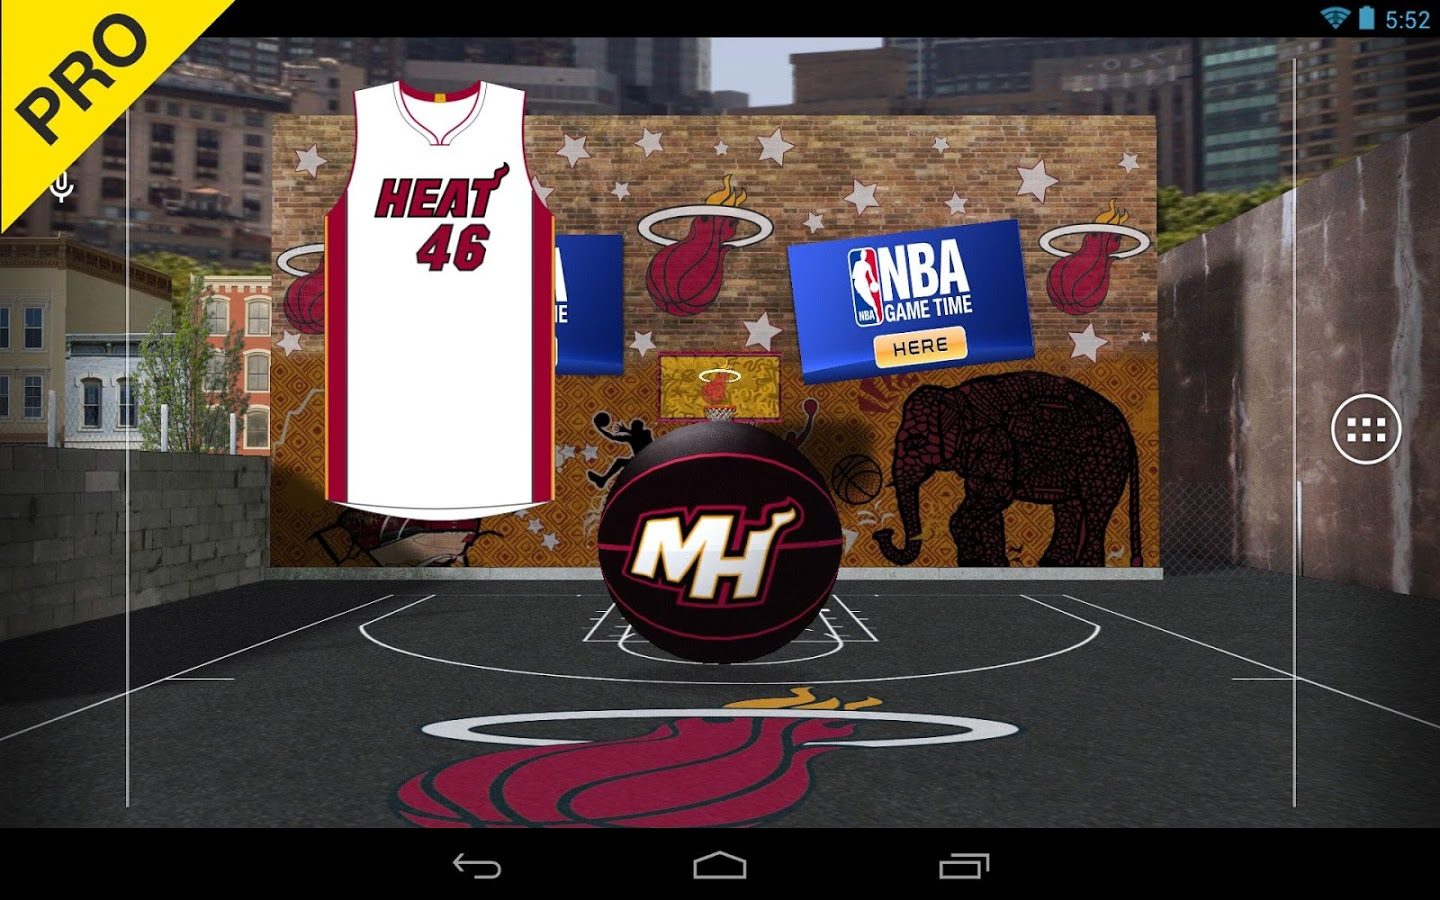 NBA 2016 Live Wallpaper   Android Apps on Google Play 1440x900